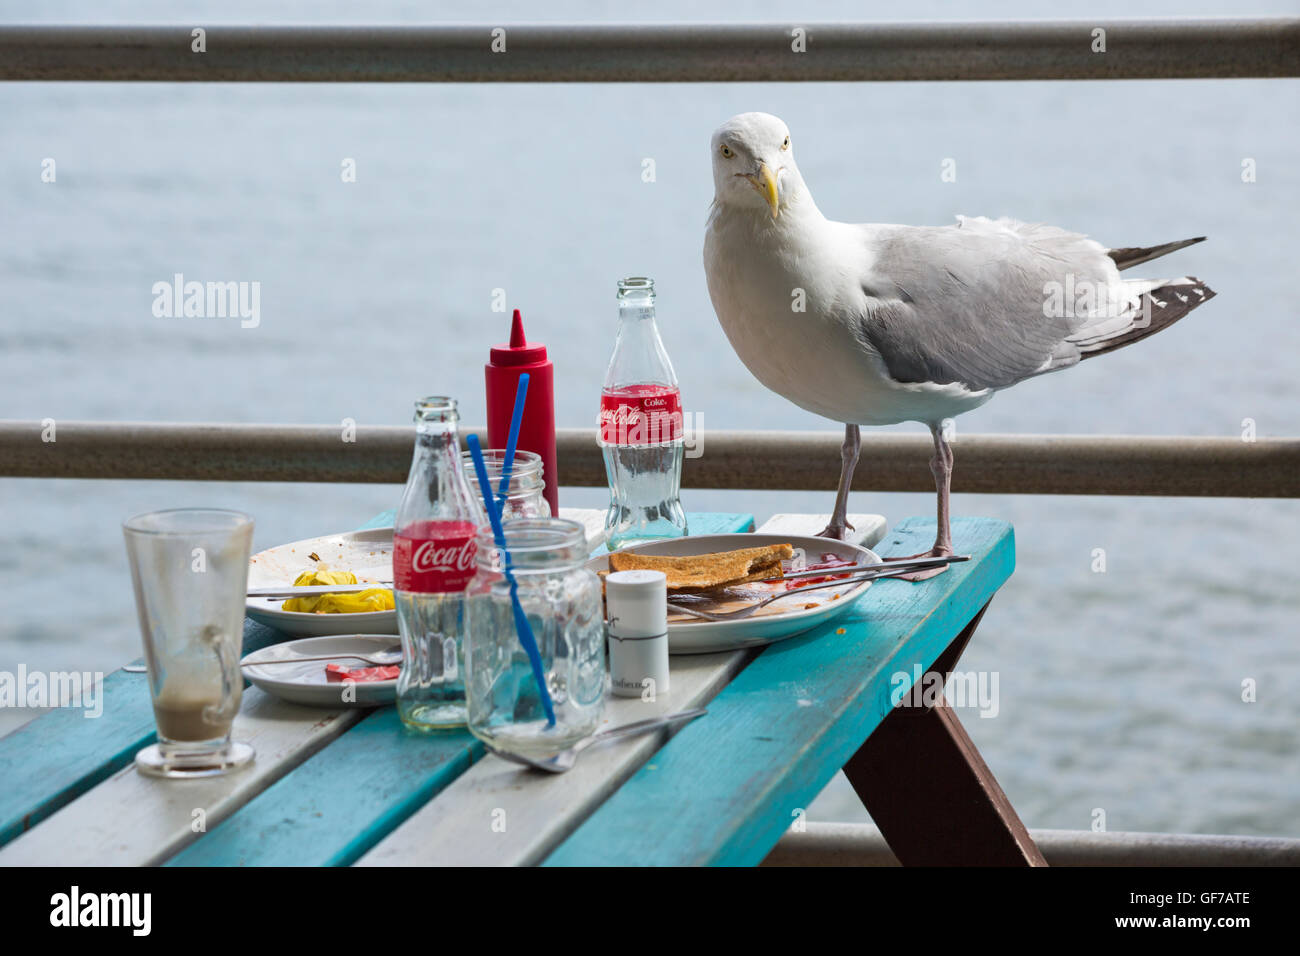 Seagull standing on table with left over breakfast at outdoor cafe at Swanage seafront, Dorset in July - Stock Image